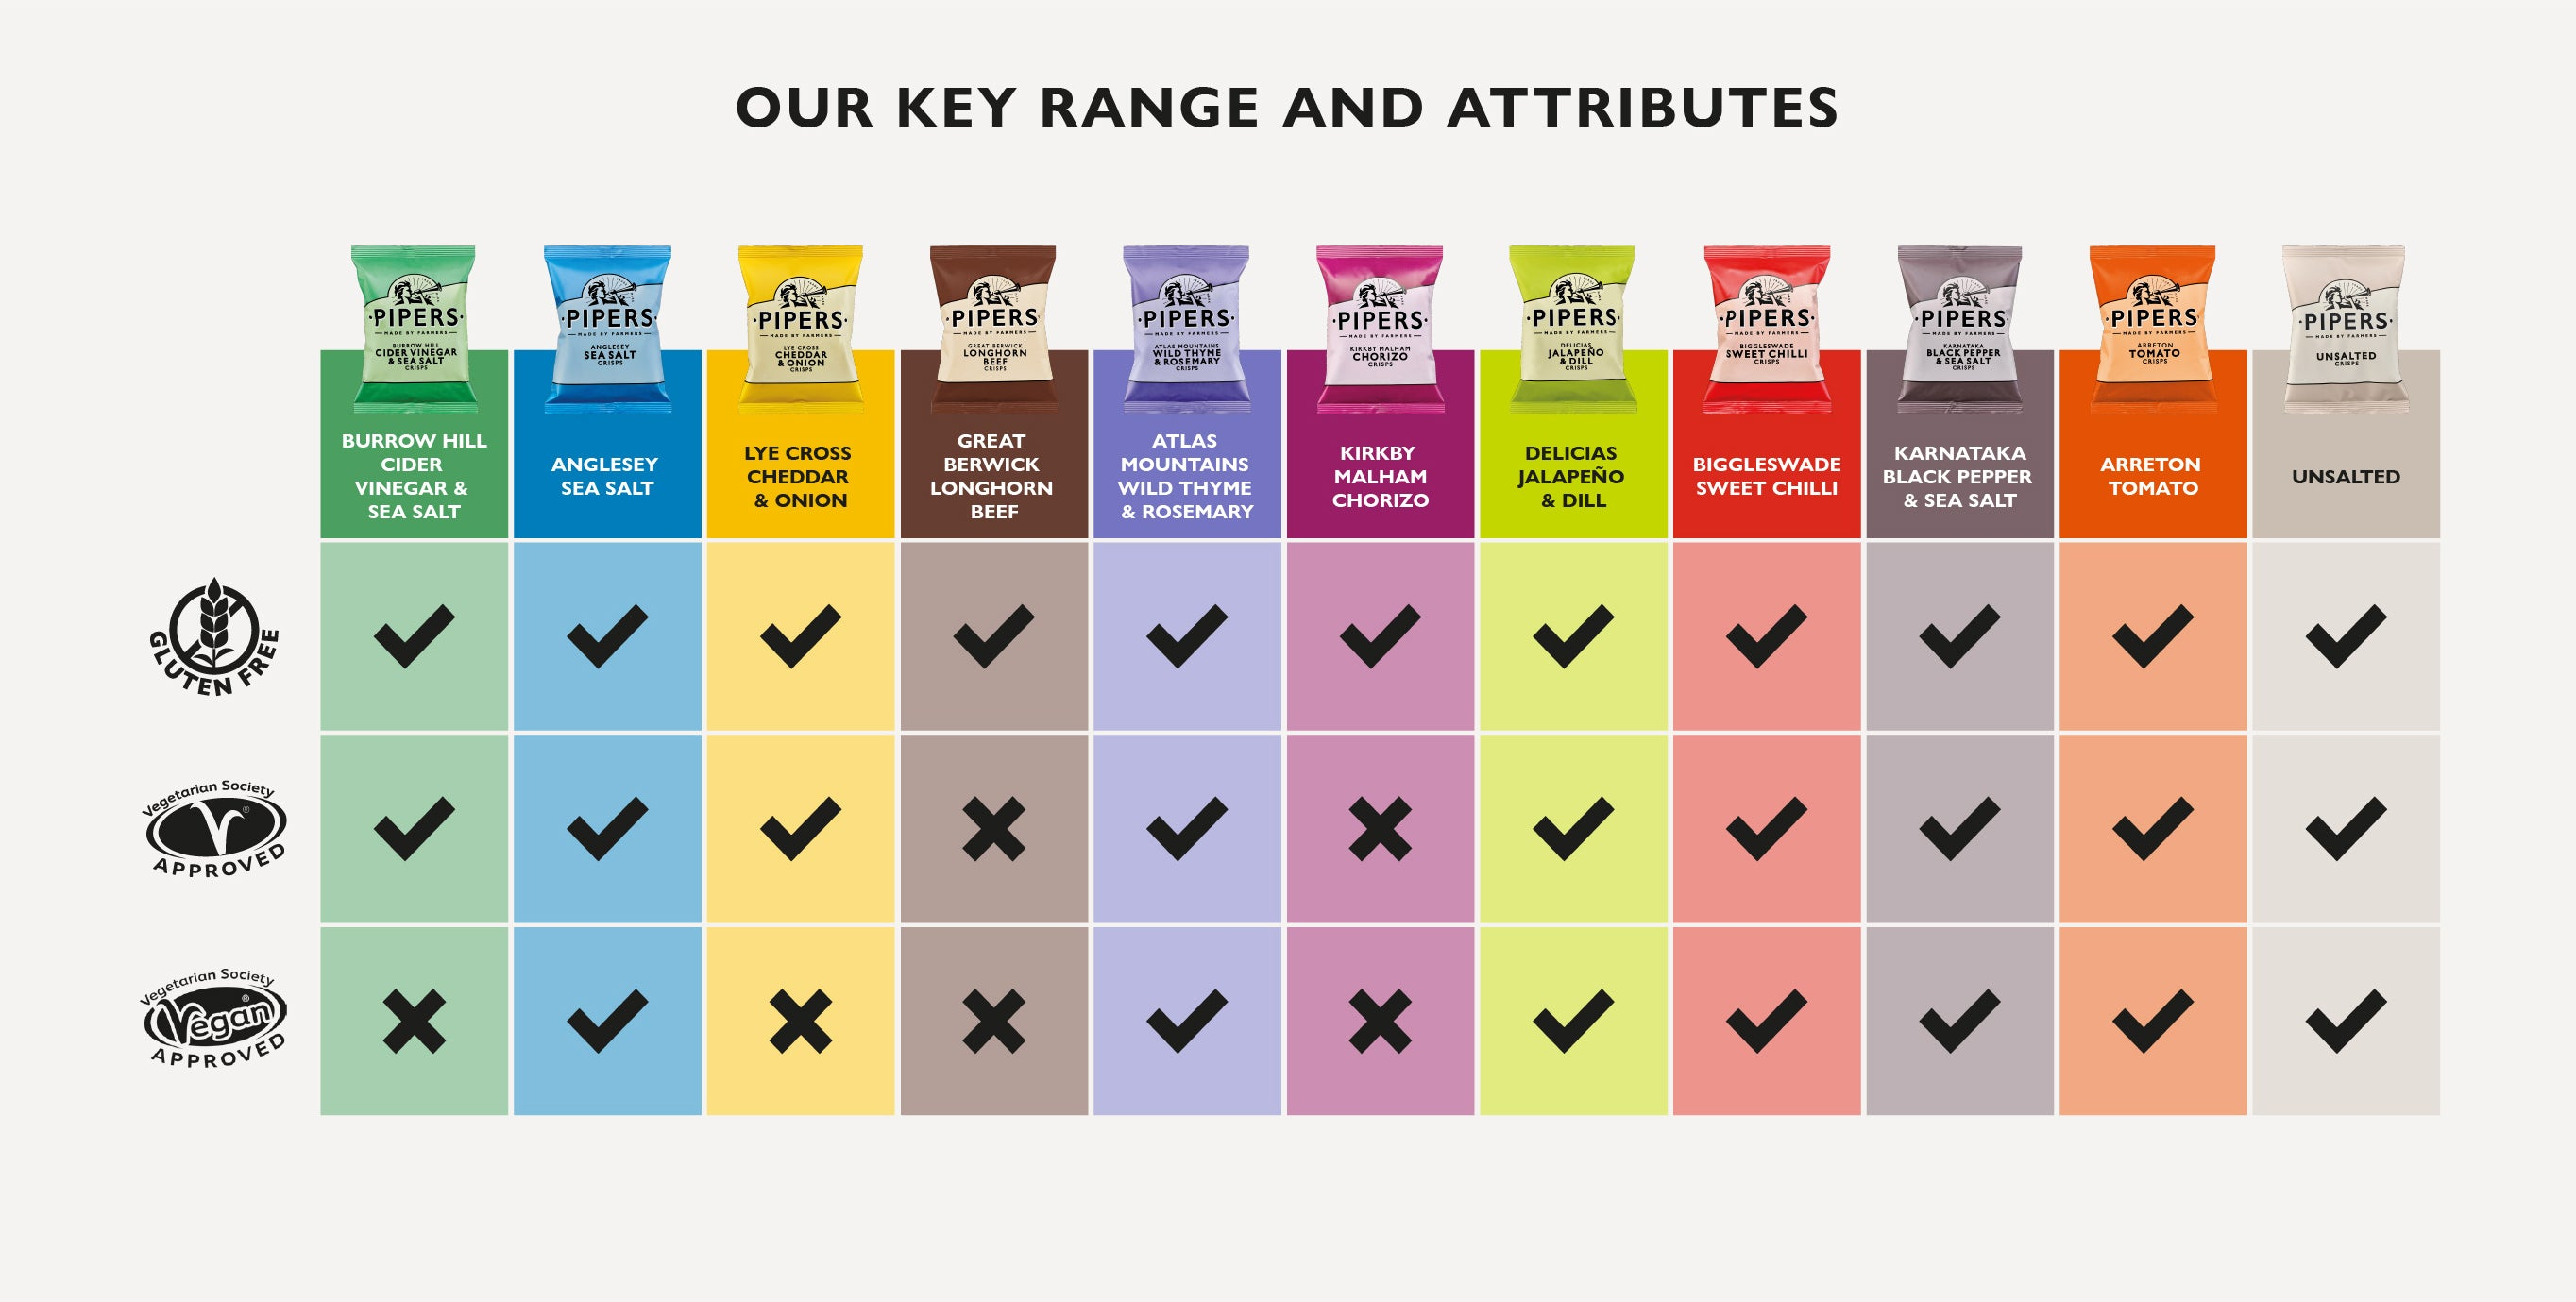 Our key range and attributes